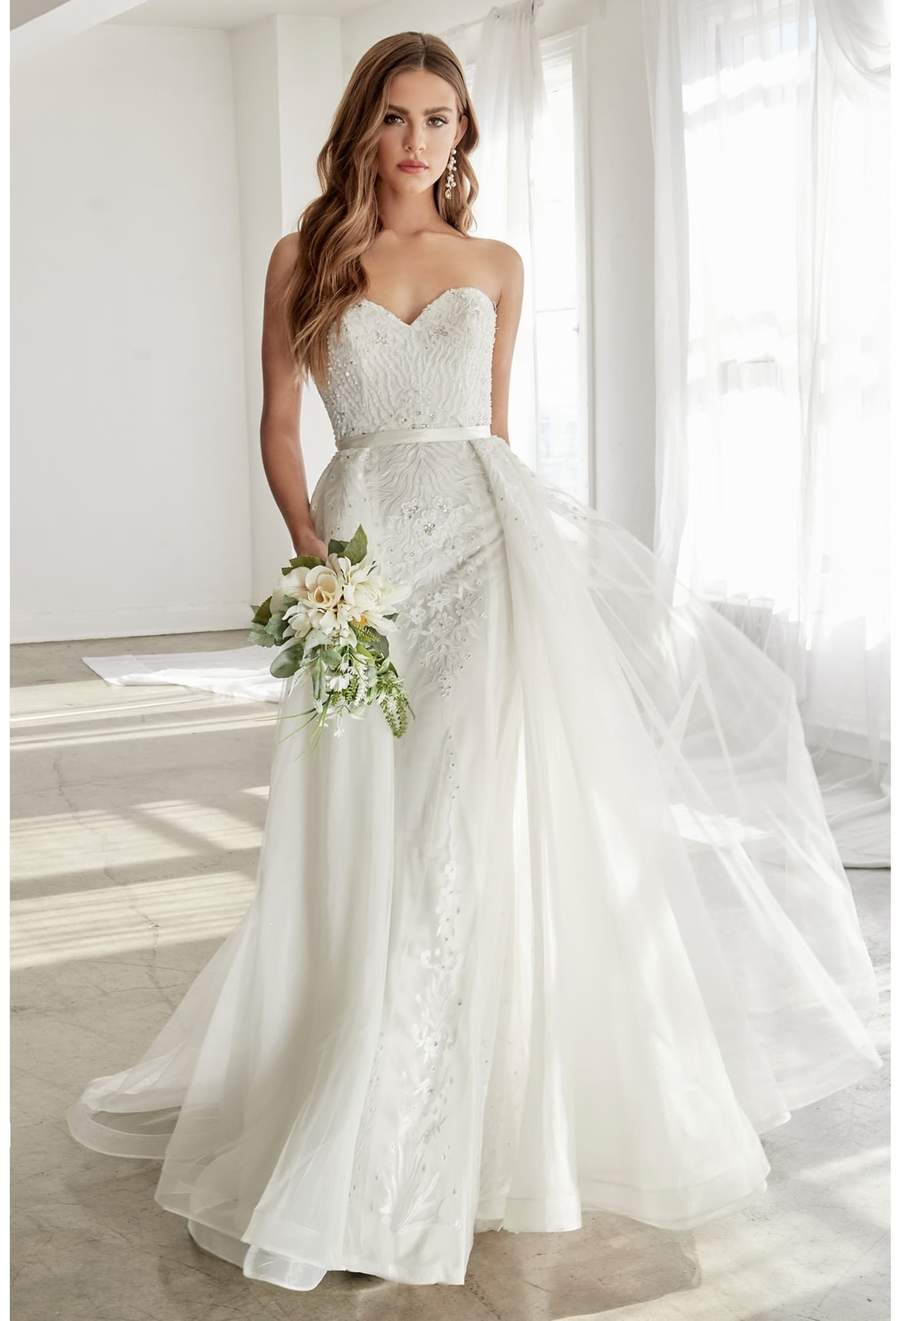 Tricia, Strapless gown with jeweled lace details and detachable tulle overskirt - KC Haute Couture Wedding Dress